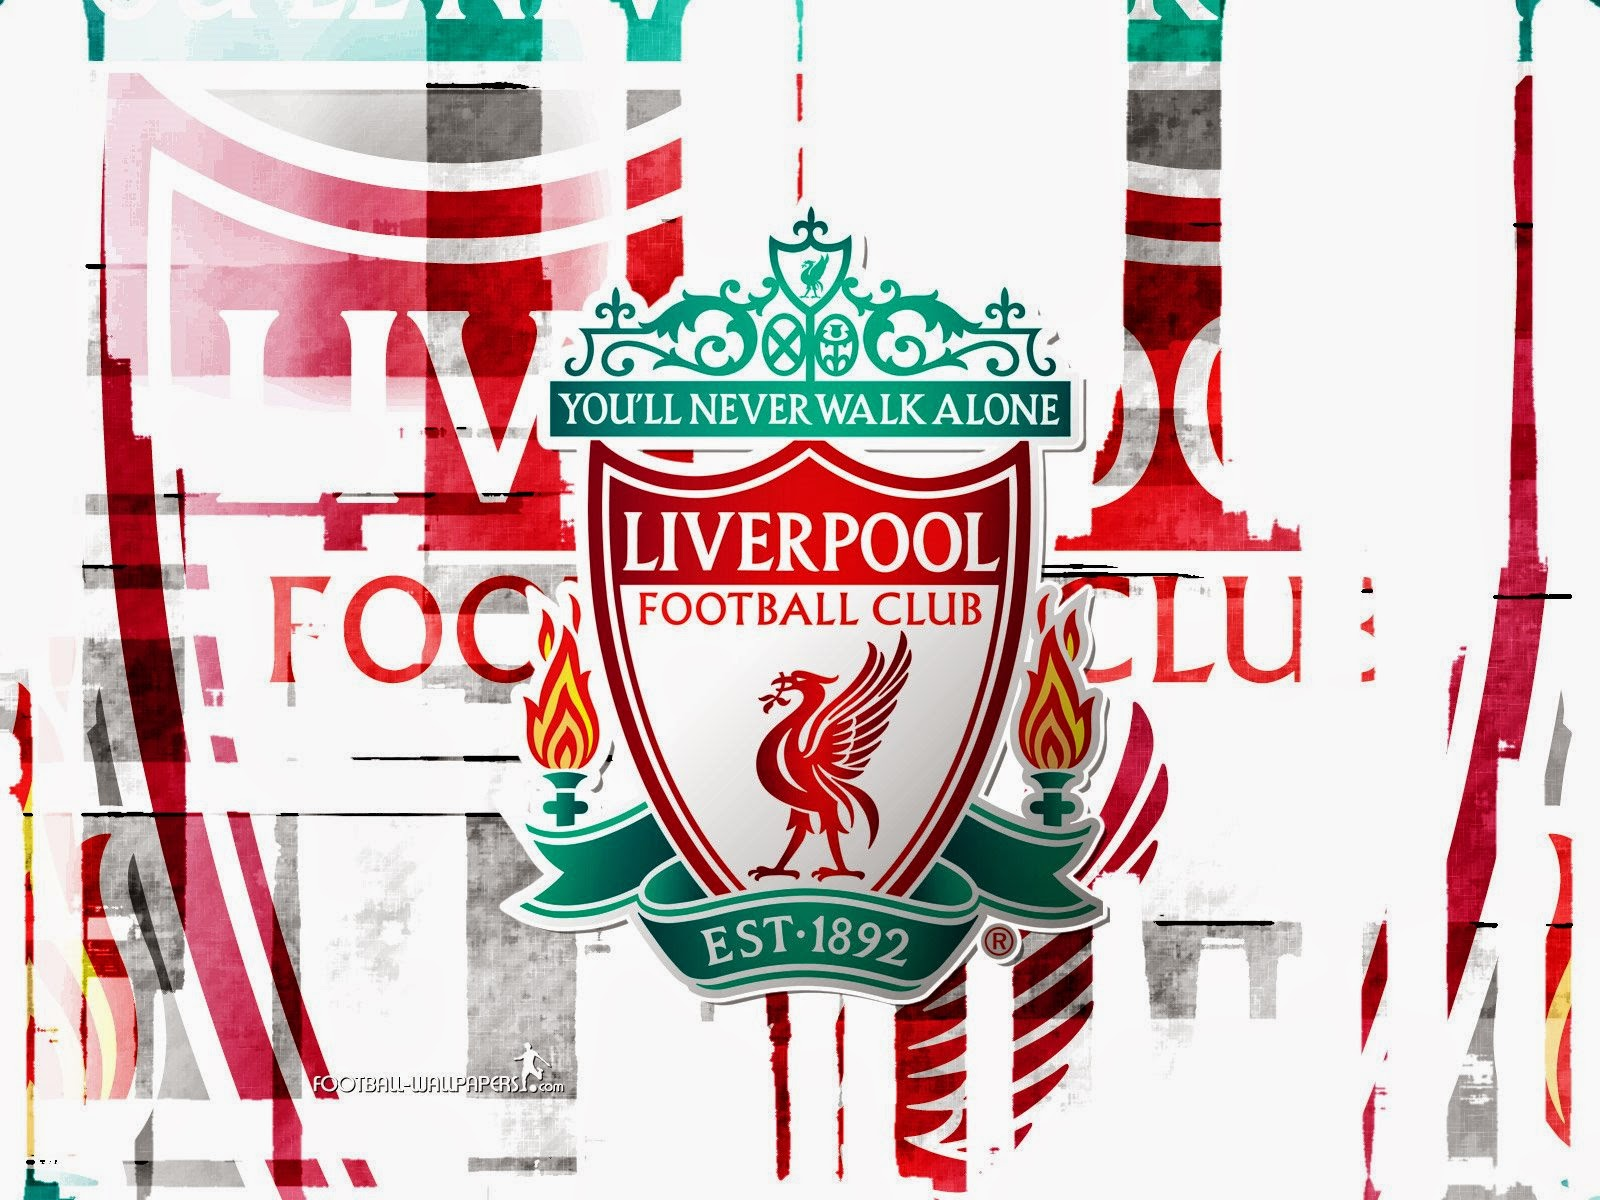 Liverpool Football Club Wallpaper - Football Wallpaper HD